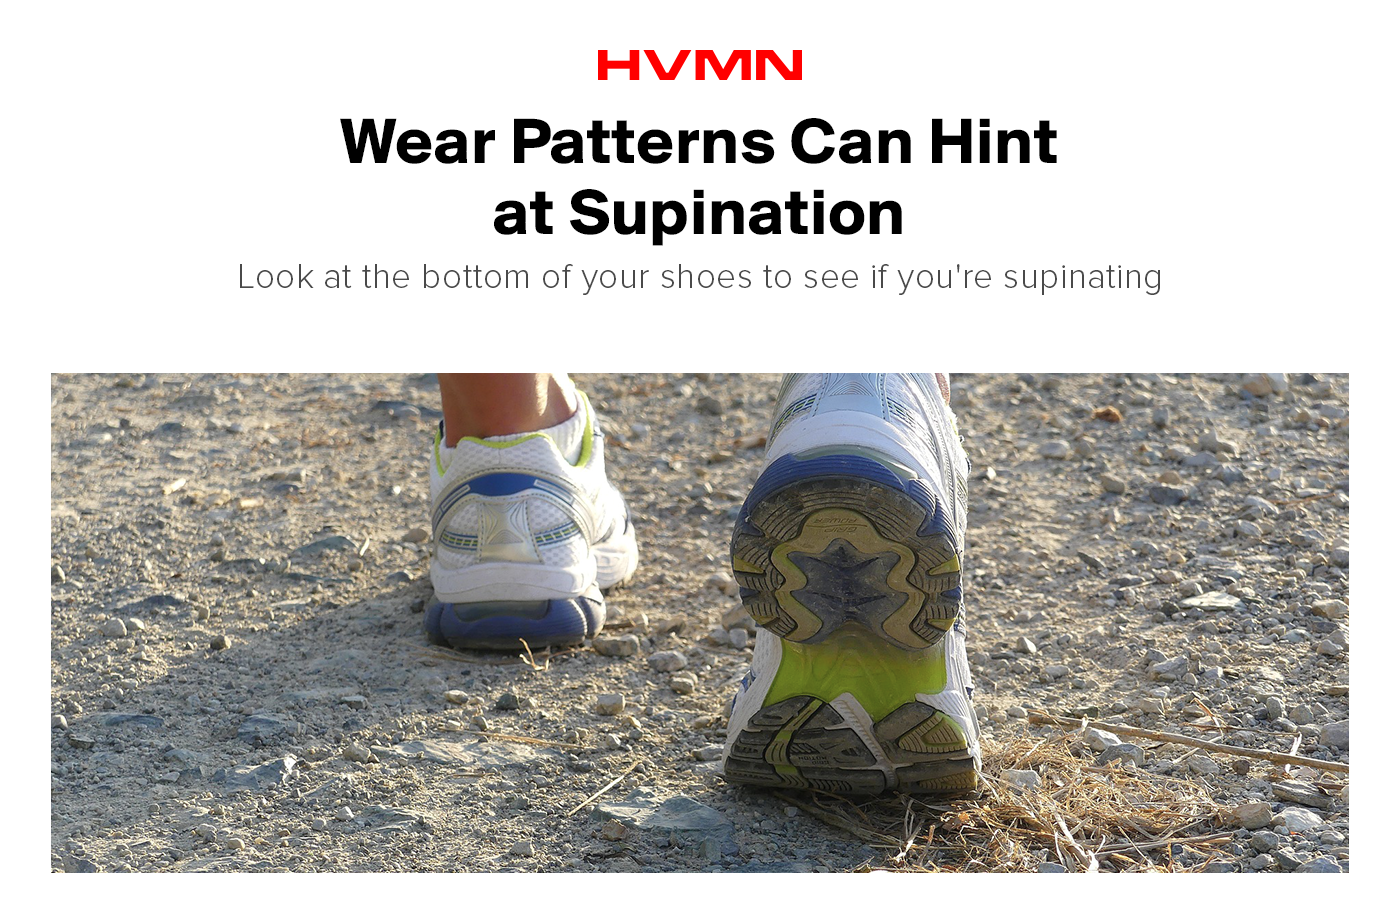 Shoe wear patterns can be used to diagnose supination.